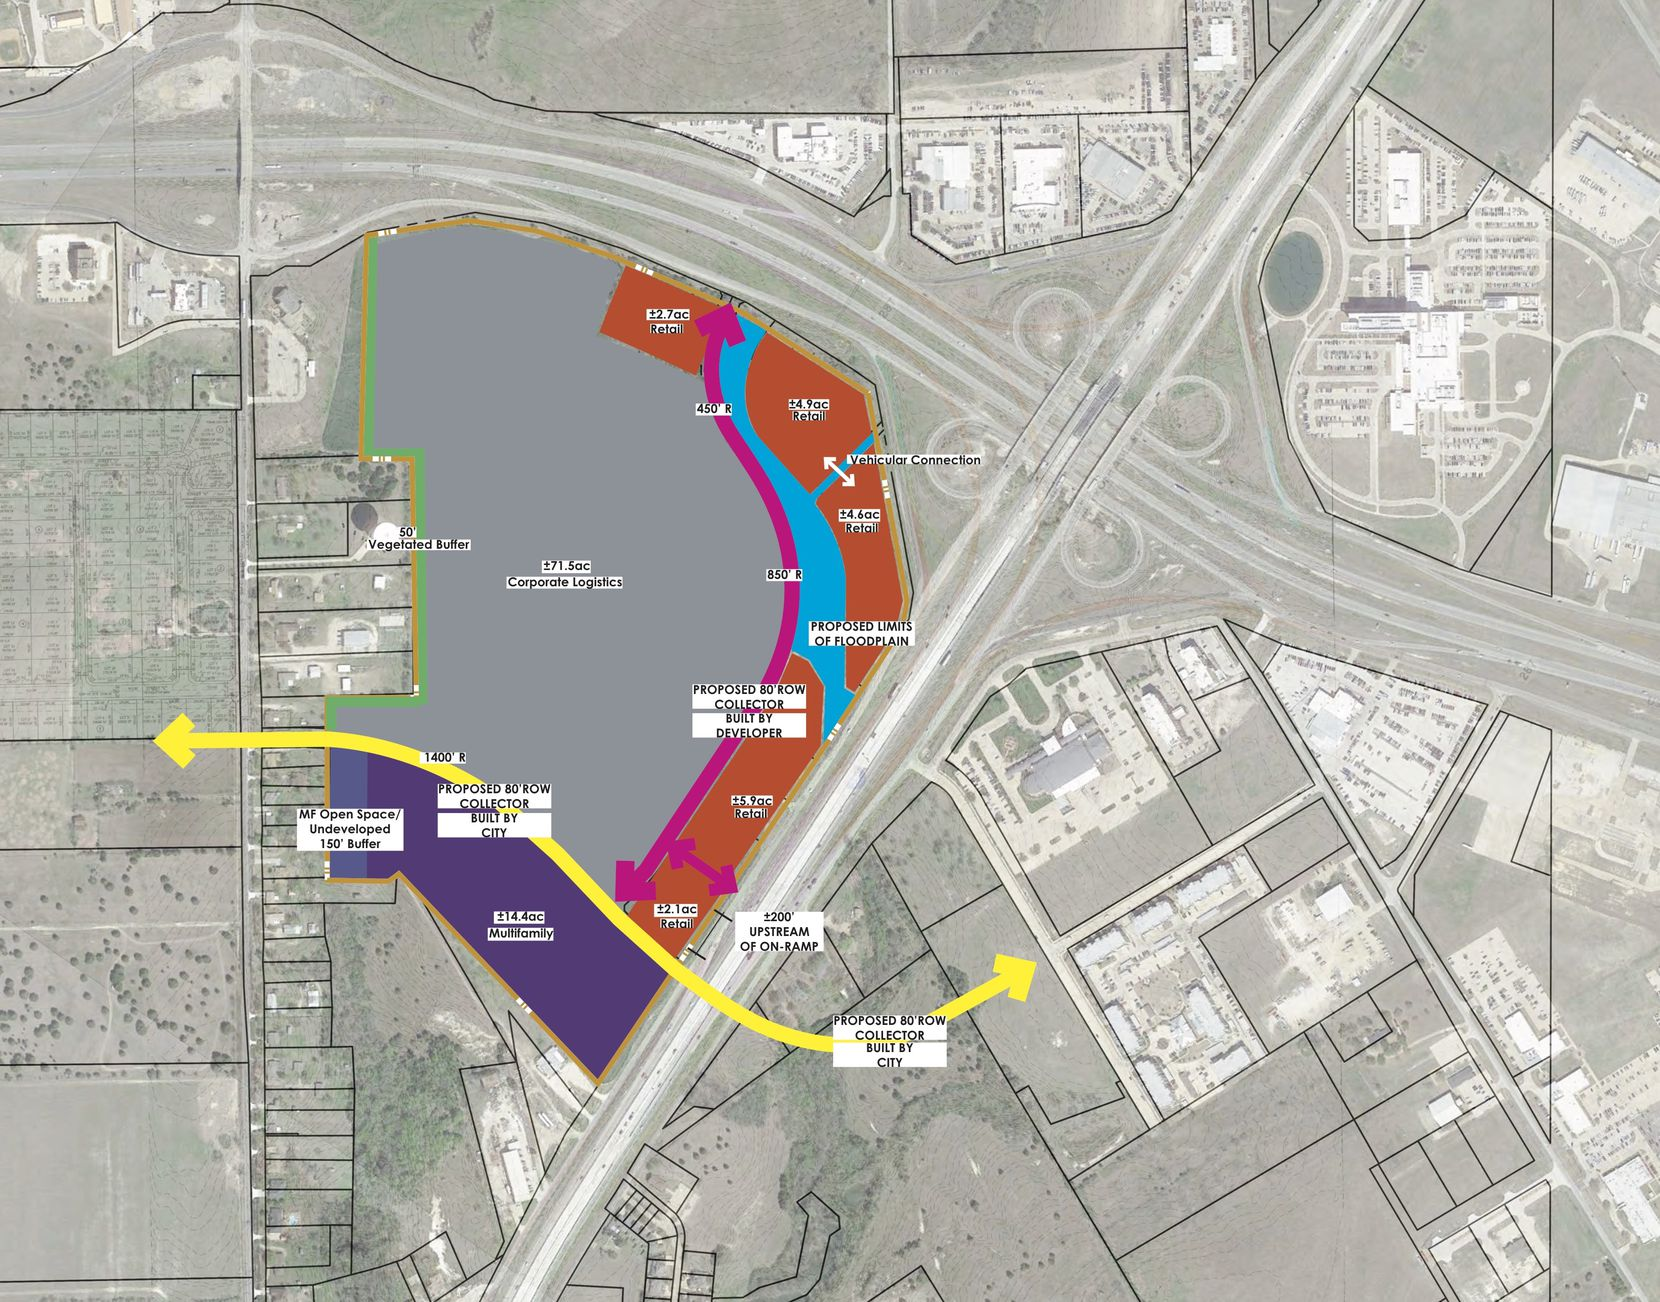 Blue Star Land has purchased almost 125 acres in Interstate 35E and U.S. Highway 287 for its mixed-use project.